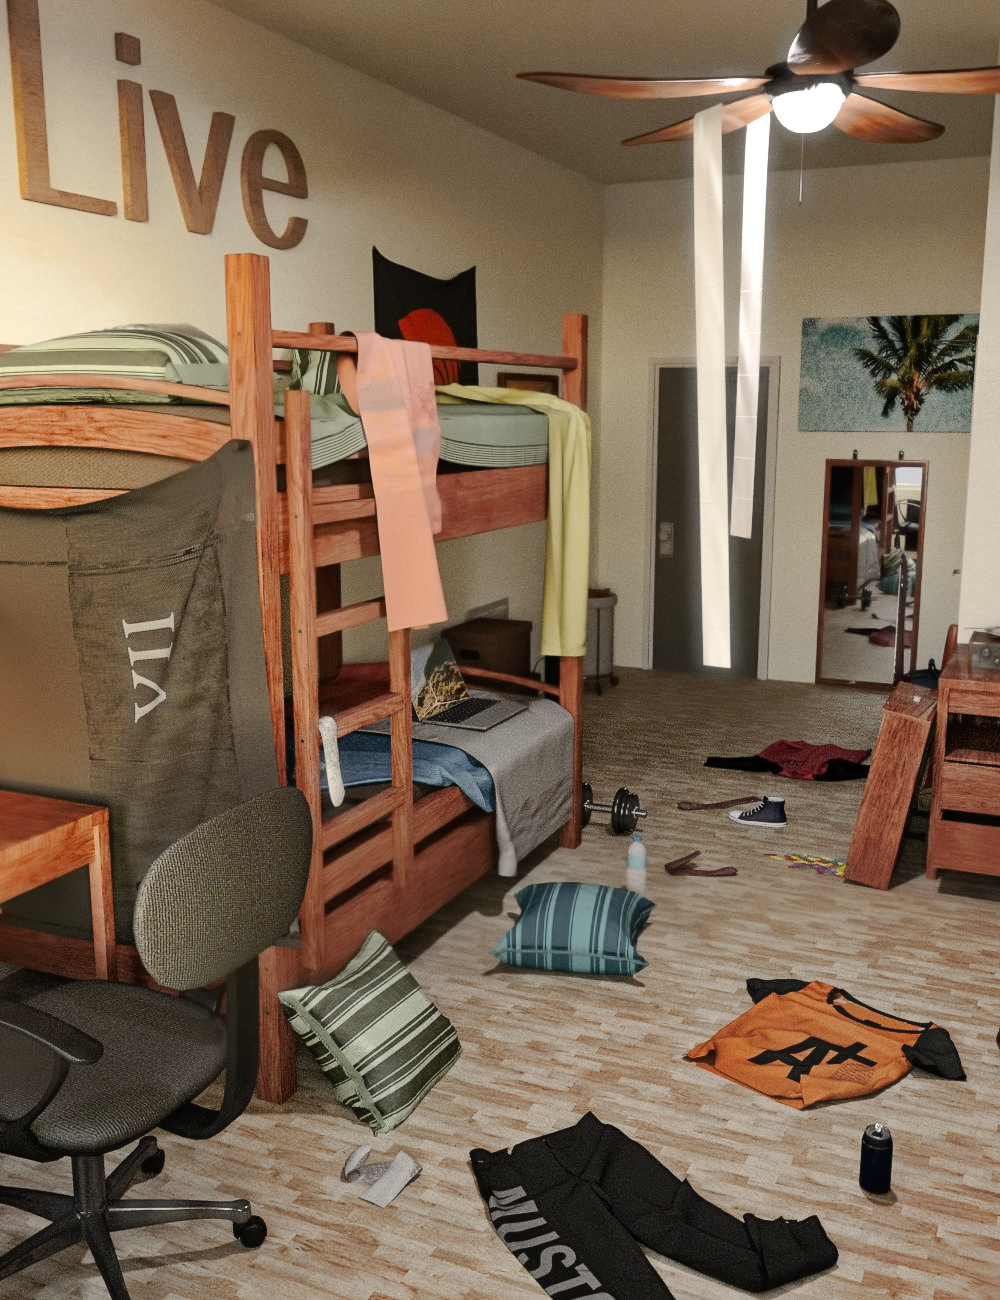 FG Cluttered Dorm by: Fugazi1968Ironman, 3D Models by Daz 3D